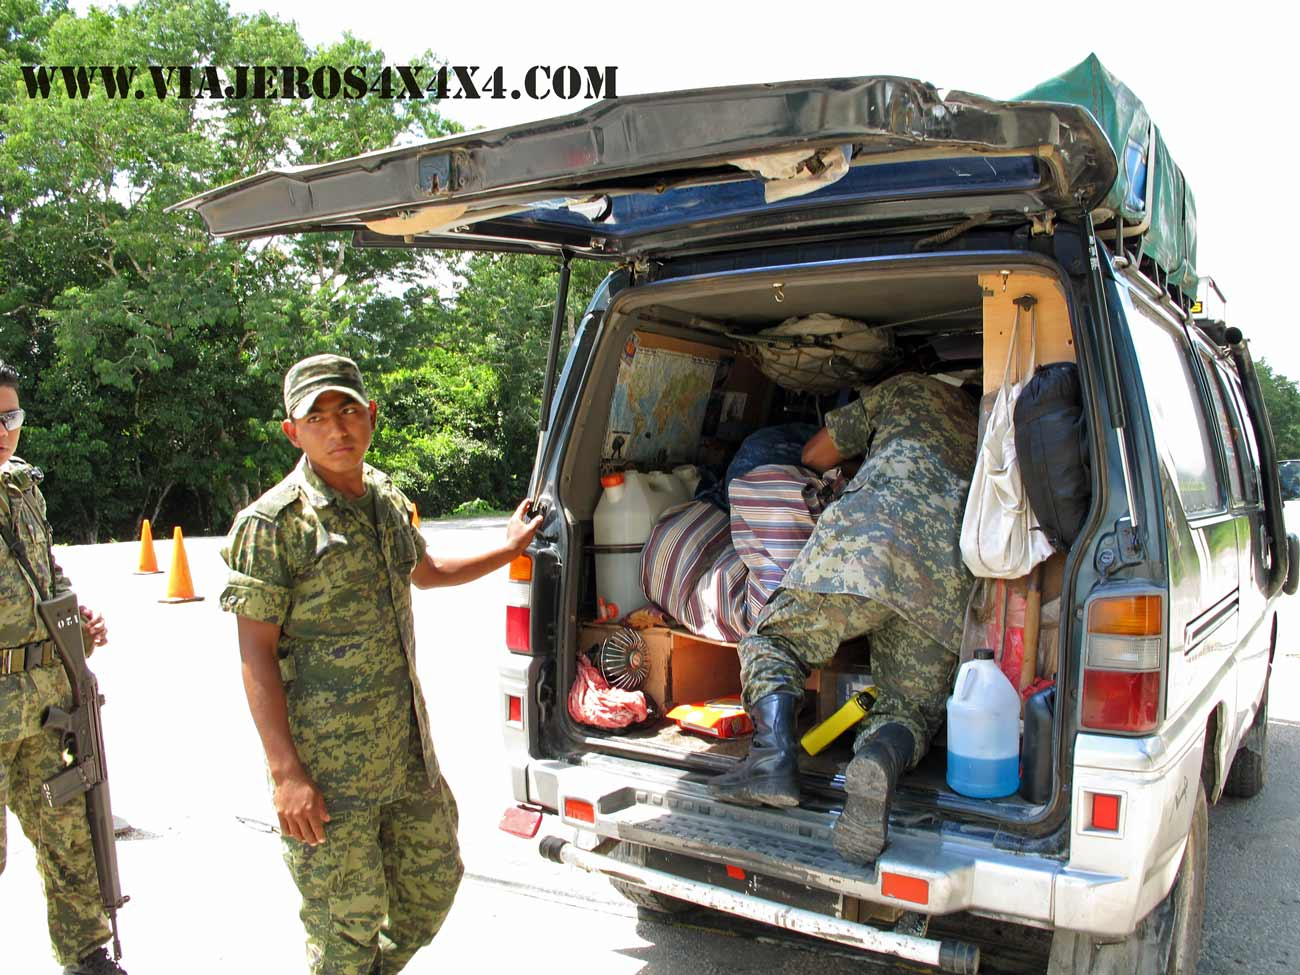 Mexican military during a search in our 4wd van, La Cucaracha. Mexico